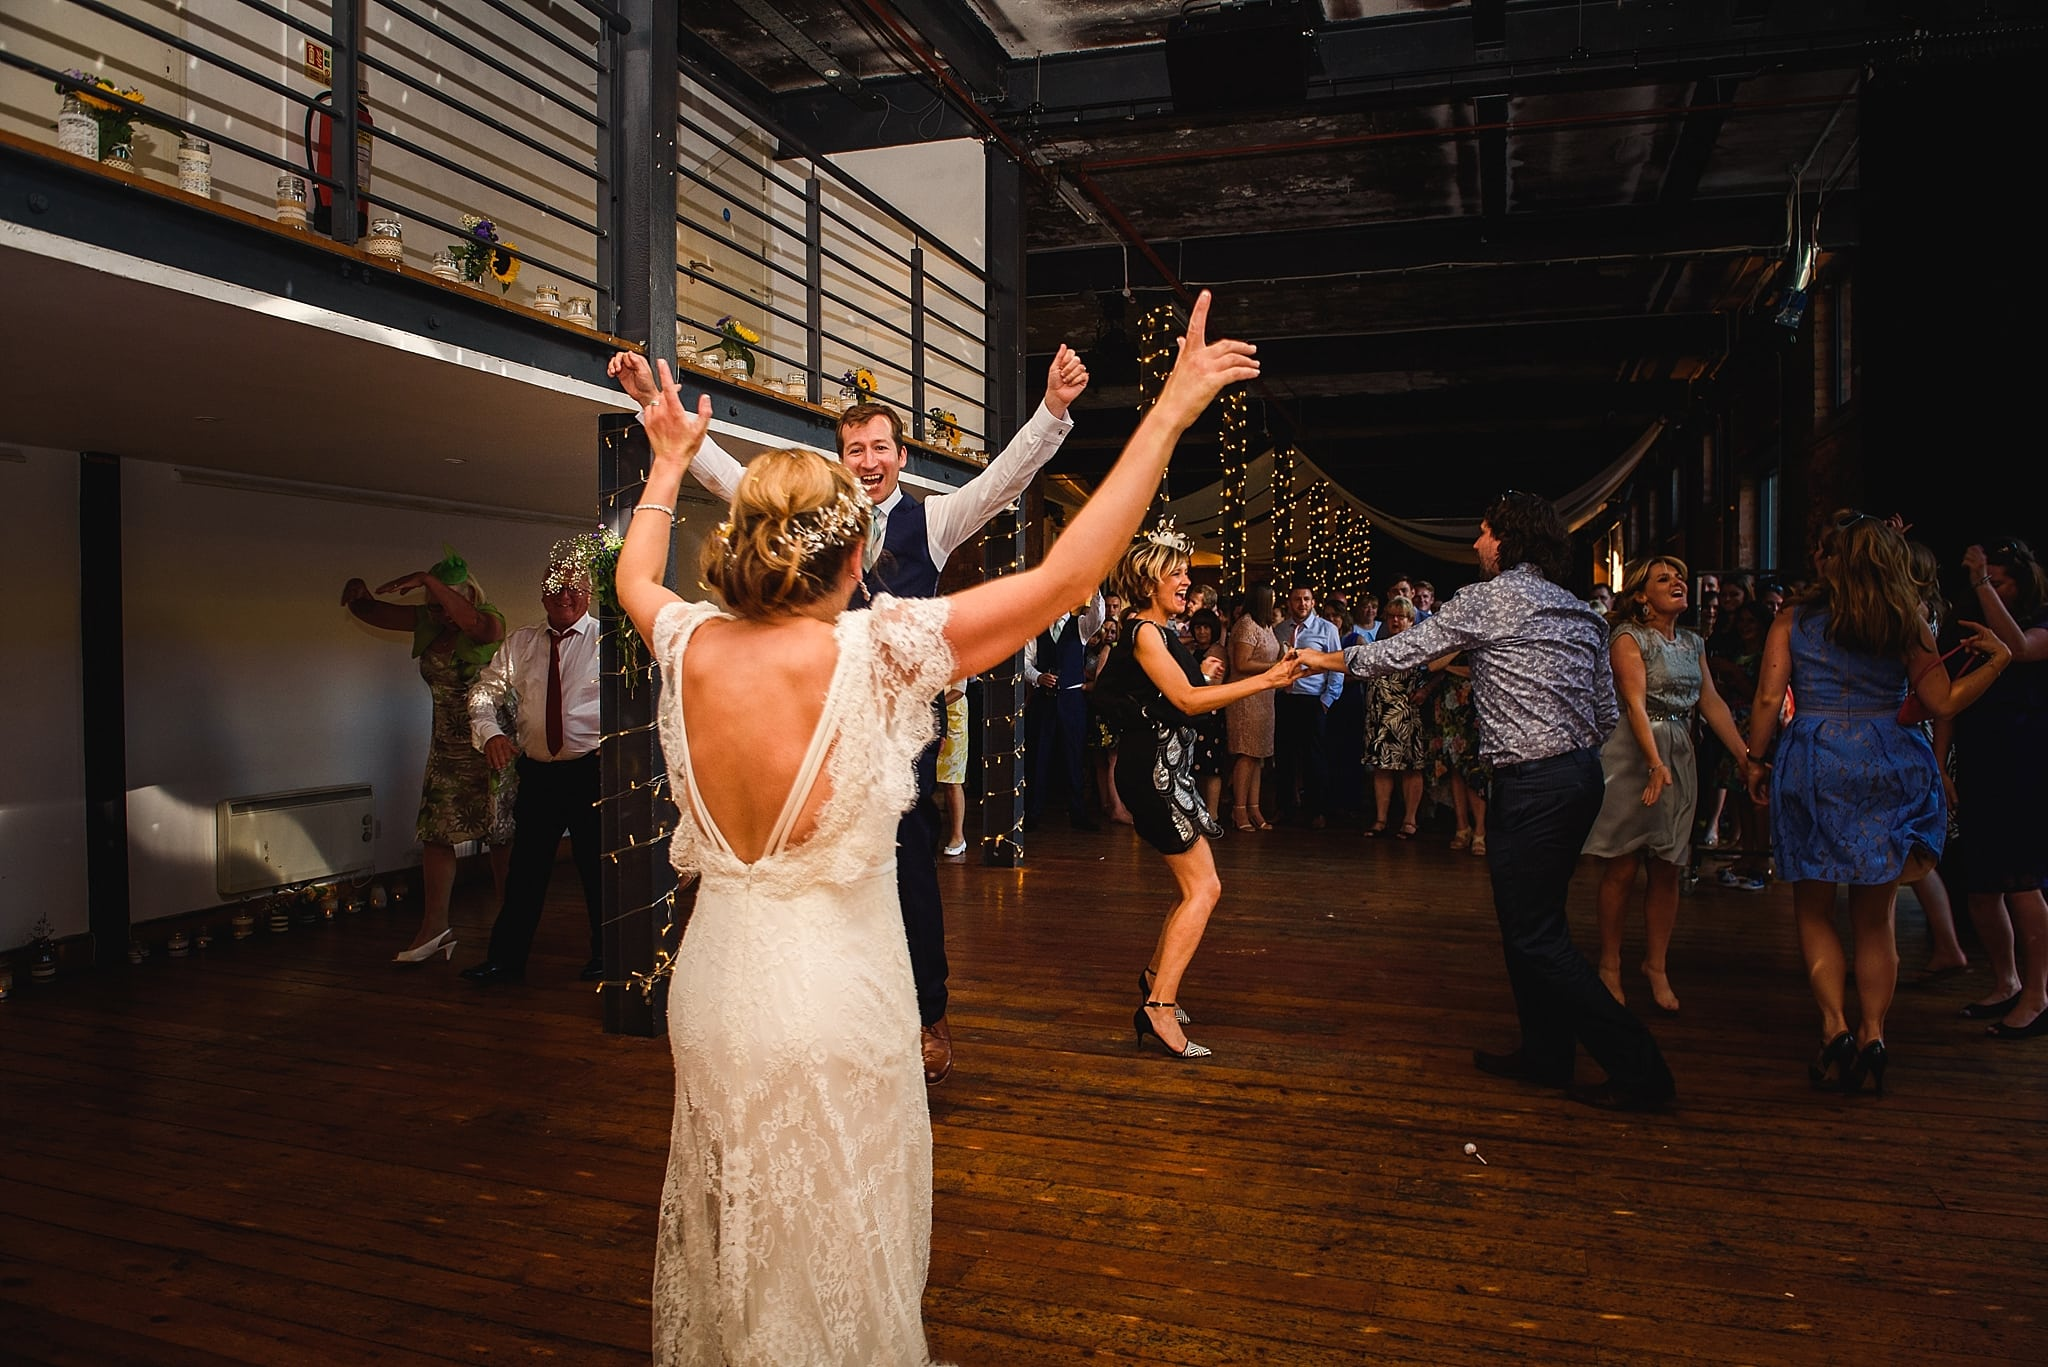 Couple dance to rock music on their wedding night